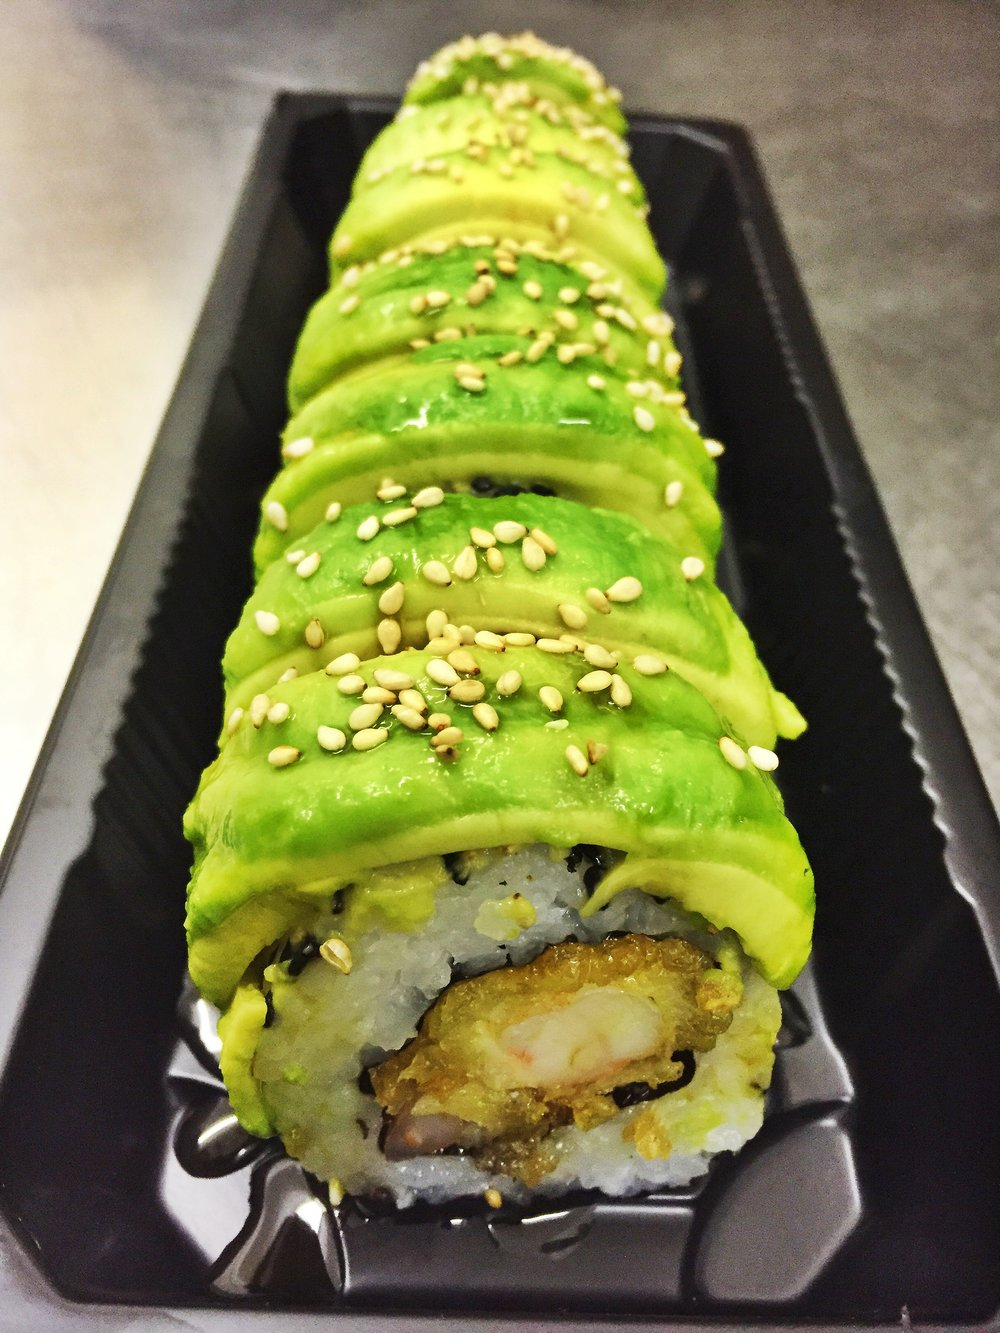 The Caterpillar Roll - £6.50